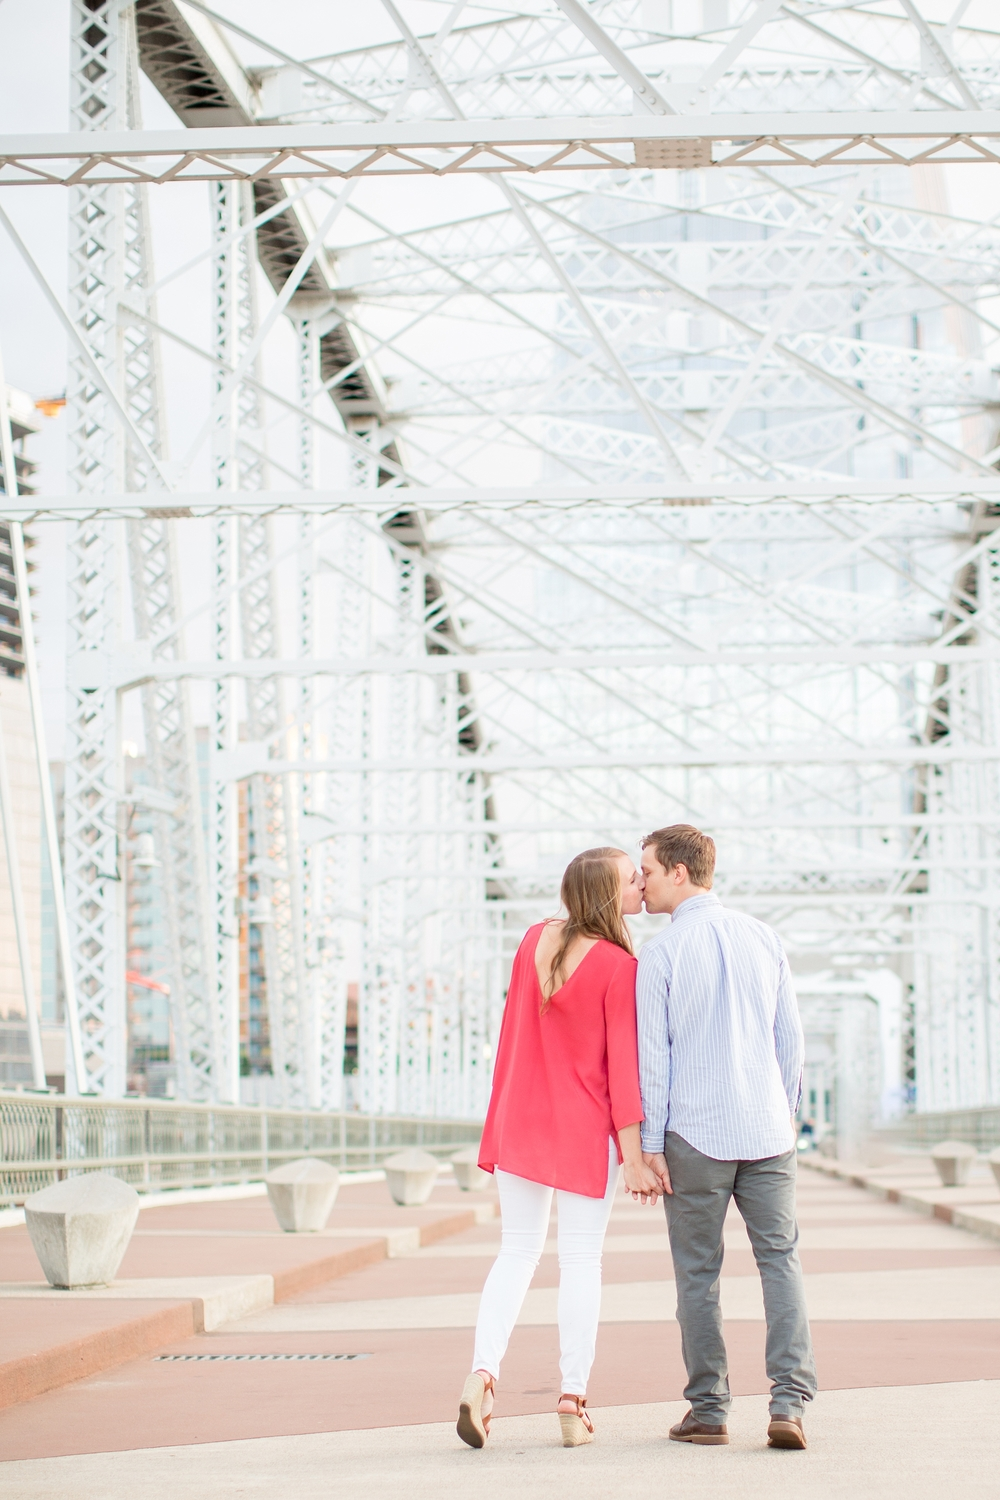 Erin & Jackson Engagement-443_anna grace photography nashville tennessee engagement photographer destination photographer photo.jpg